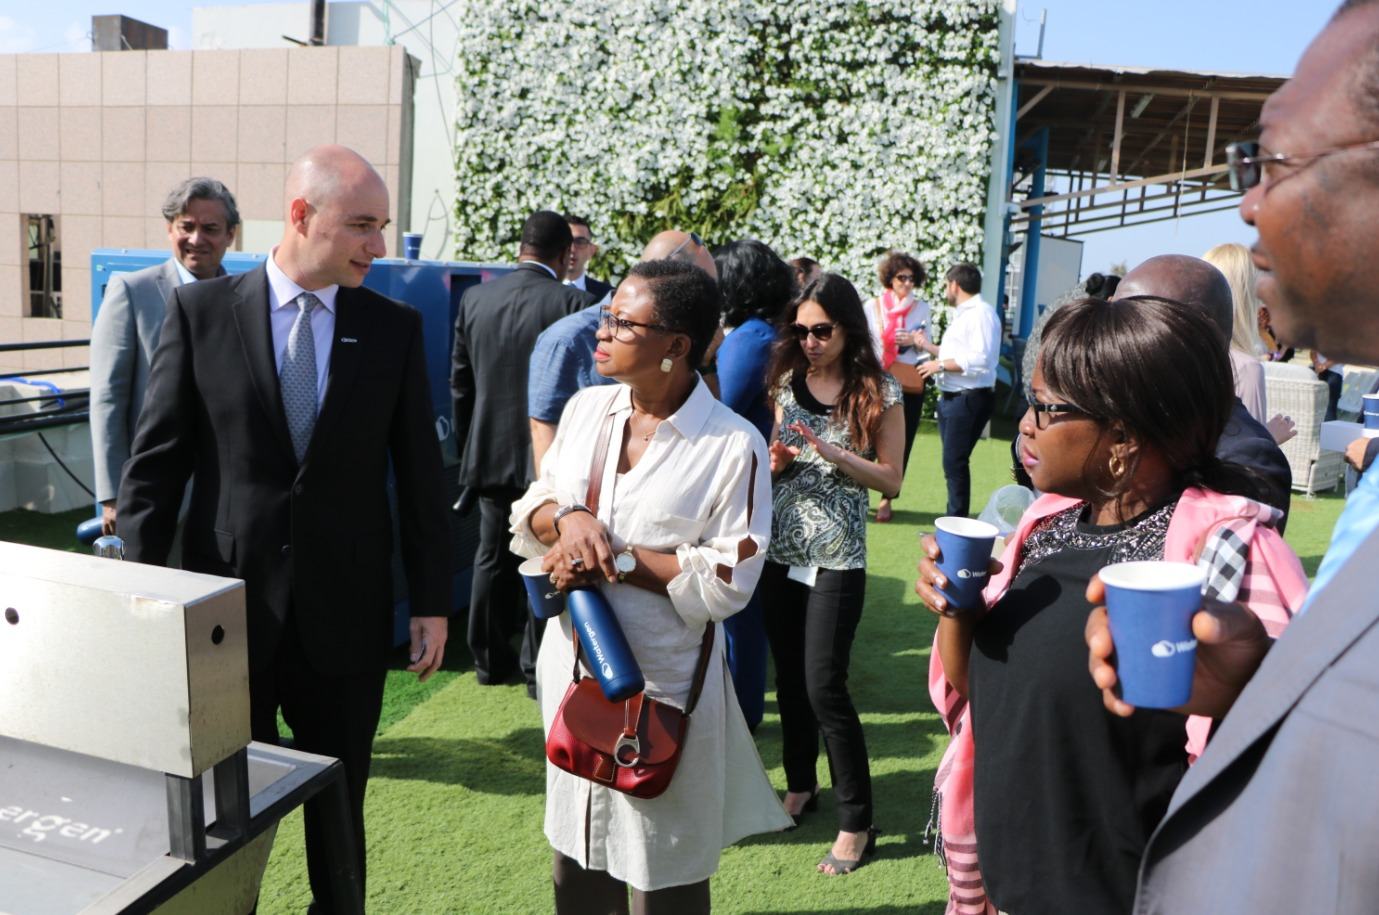 Delegation of UN Ambassadors See, Hear and Taste From Watergen's Life-Saving Technology